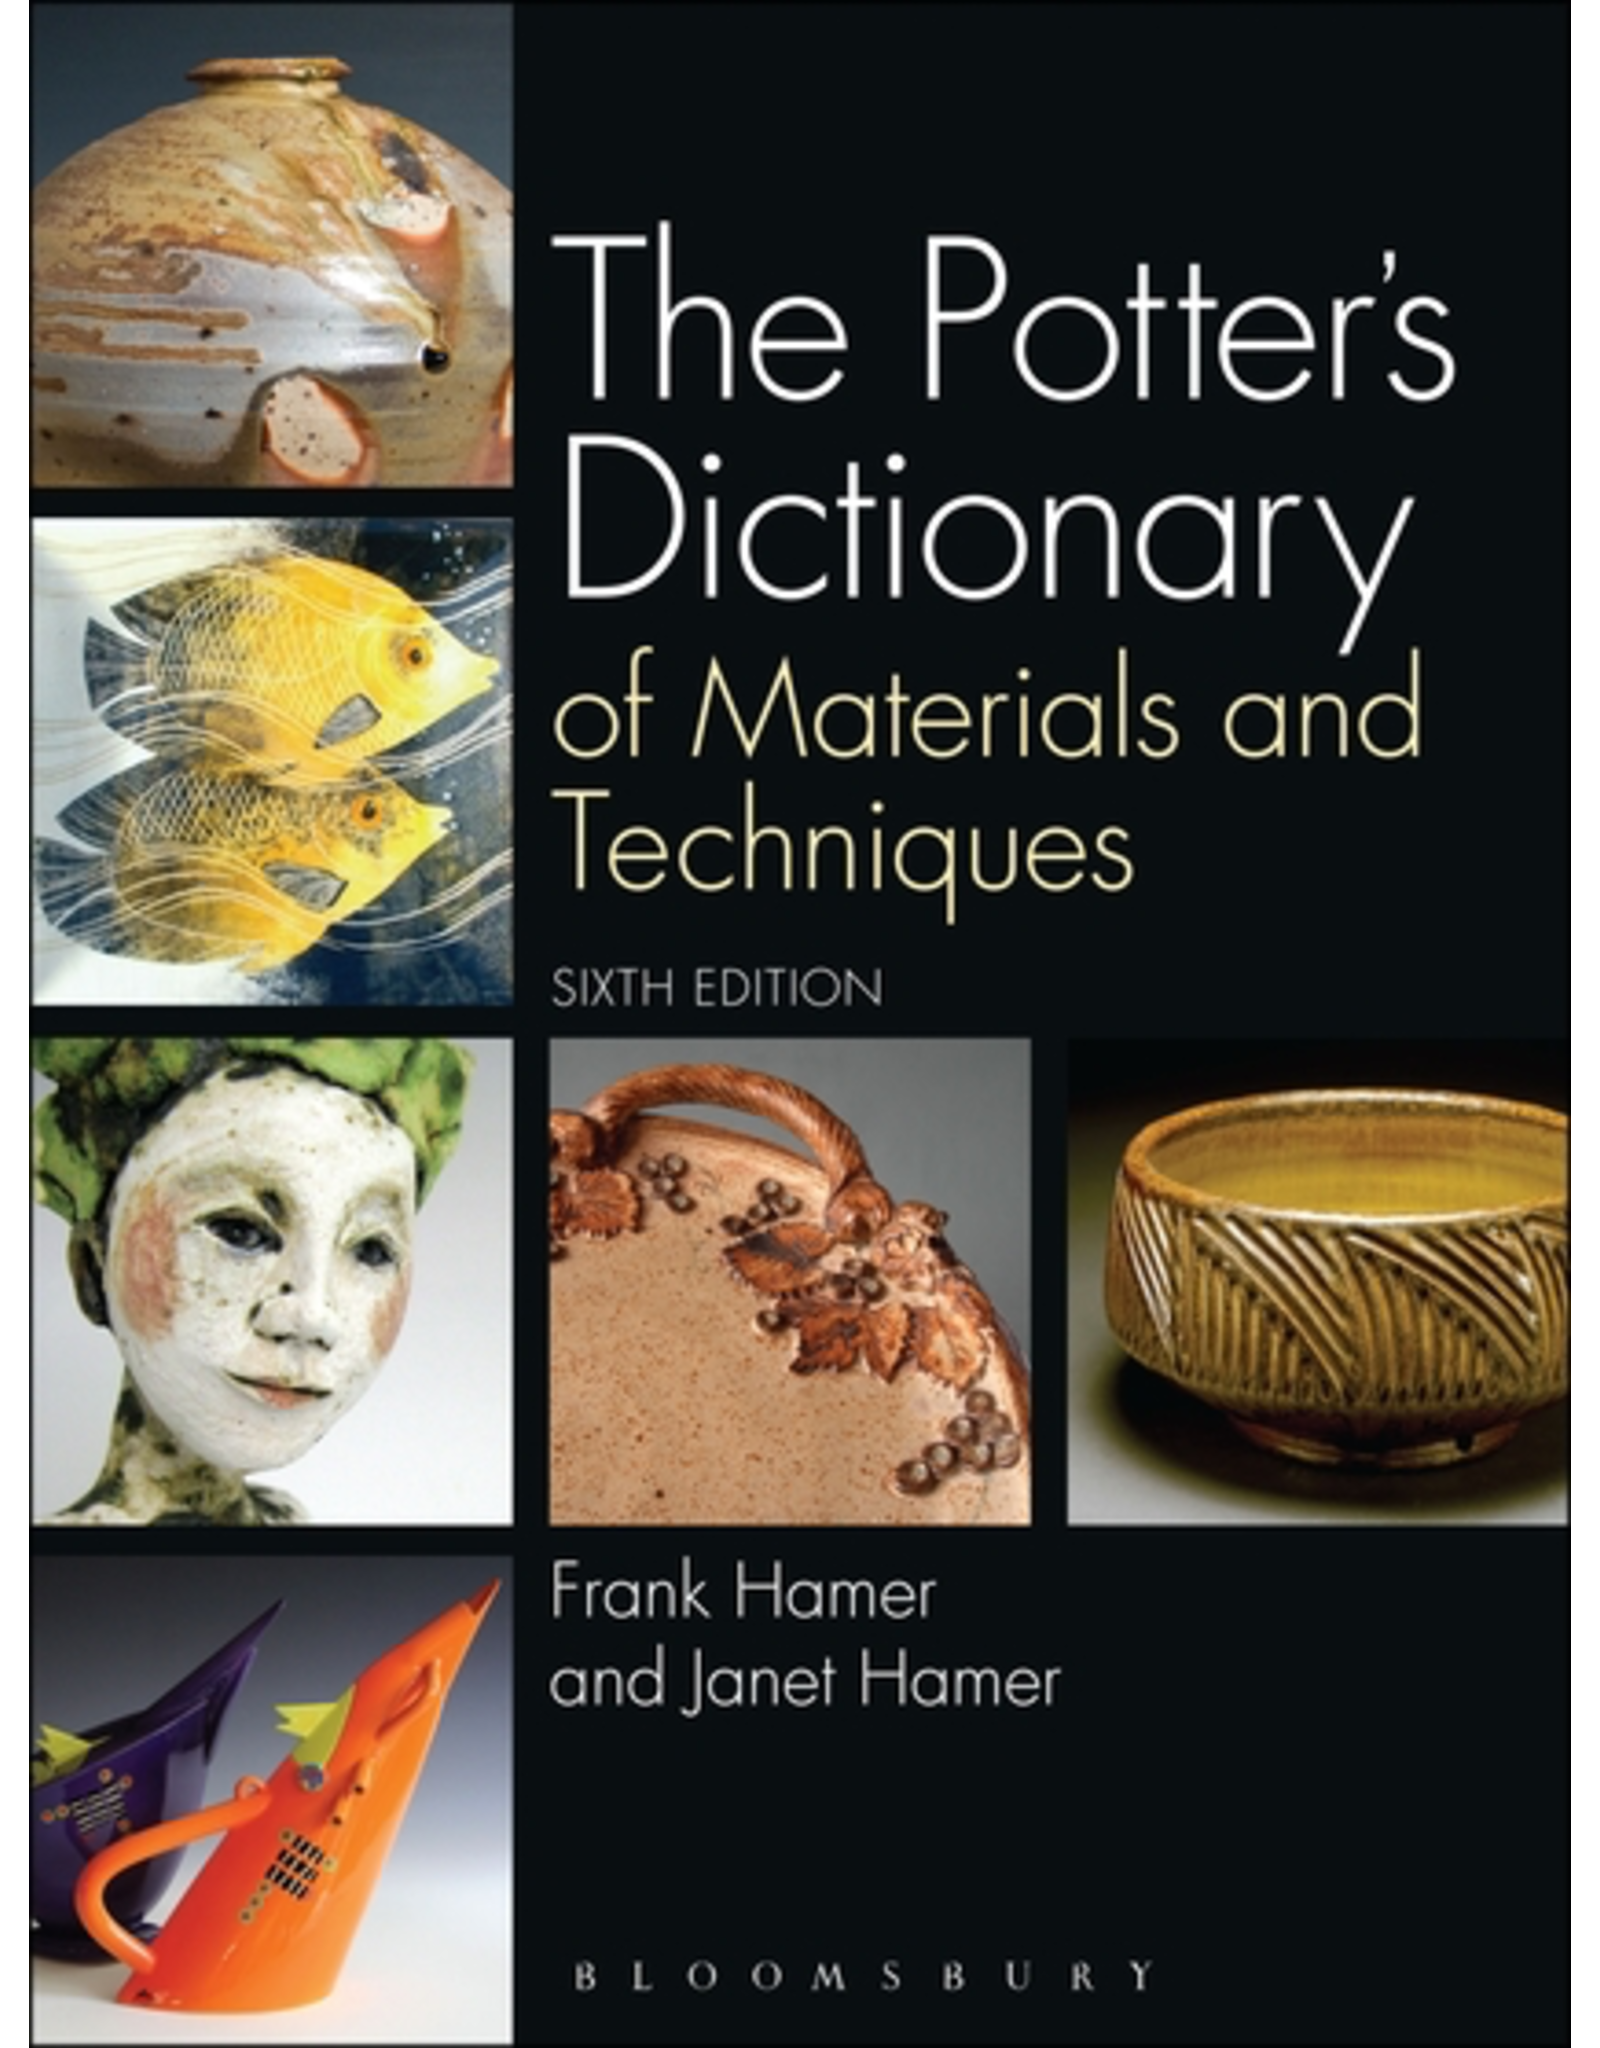 The potter's Dictionary (6th Edition) - Frank Hamer